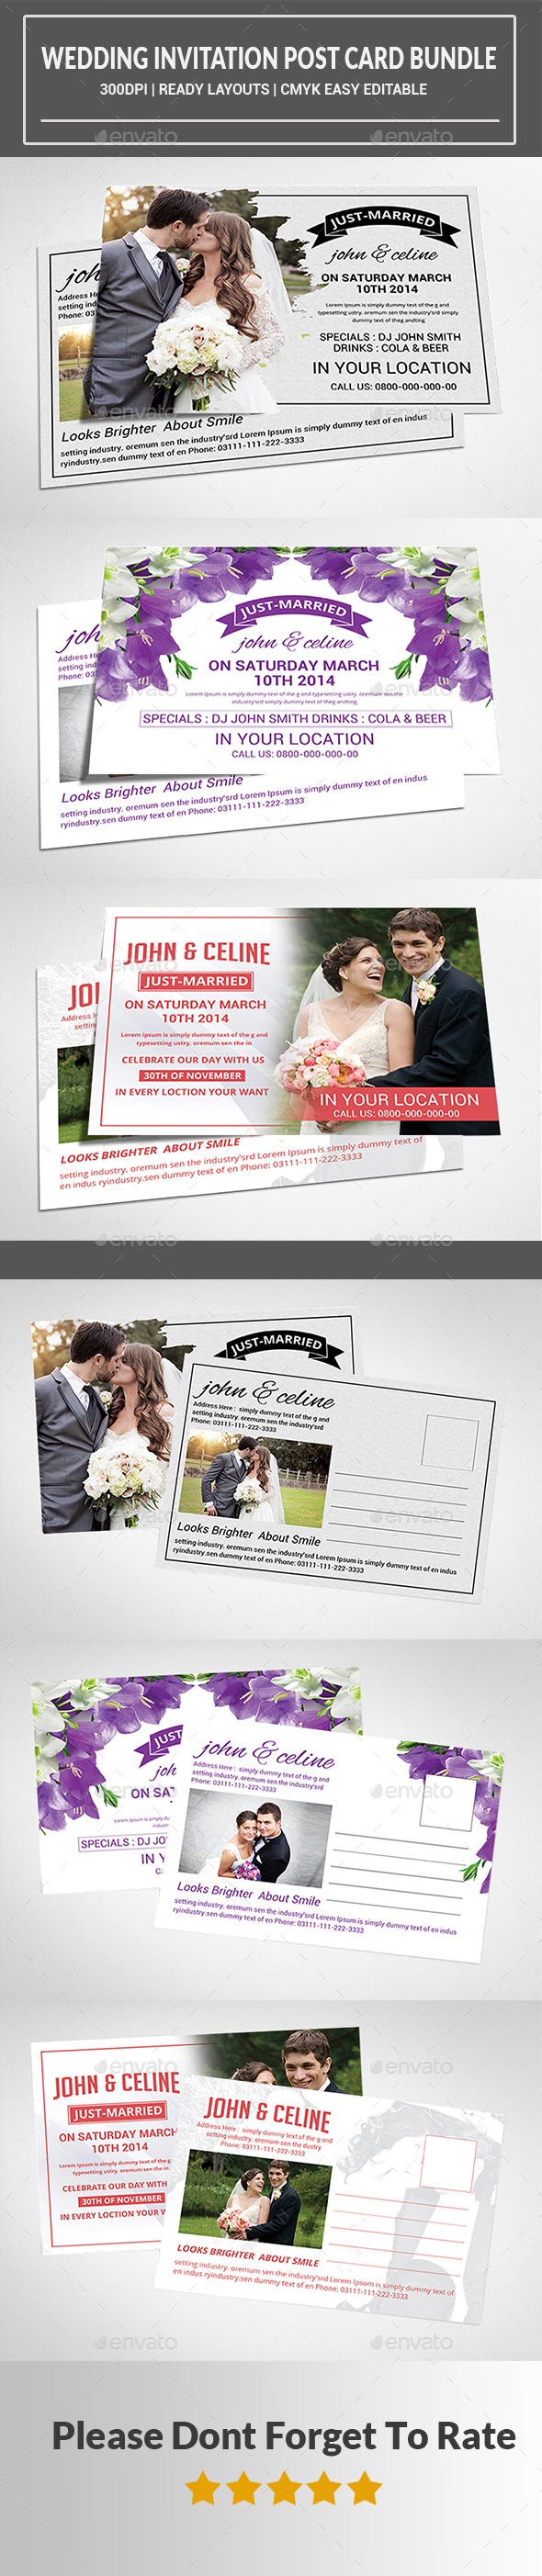 Wedding Invitation Post Card Bundle  - Cards & Invites Print Templates